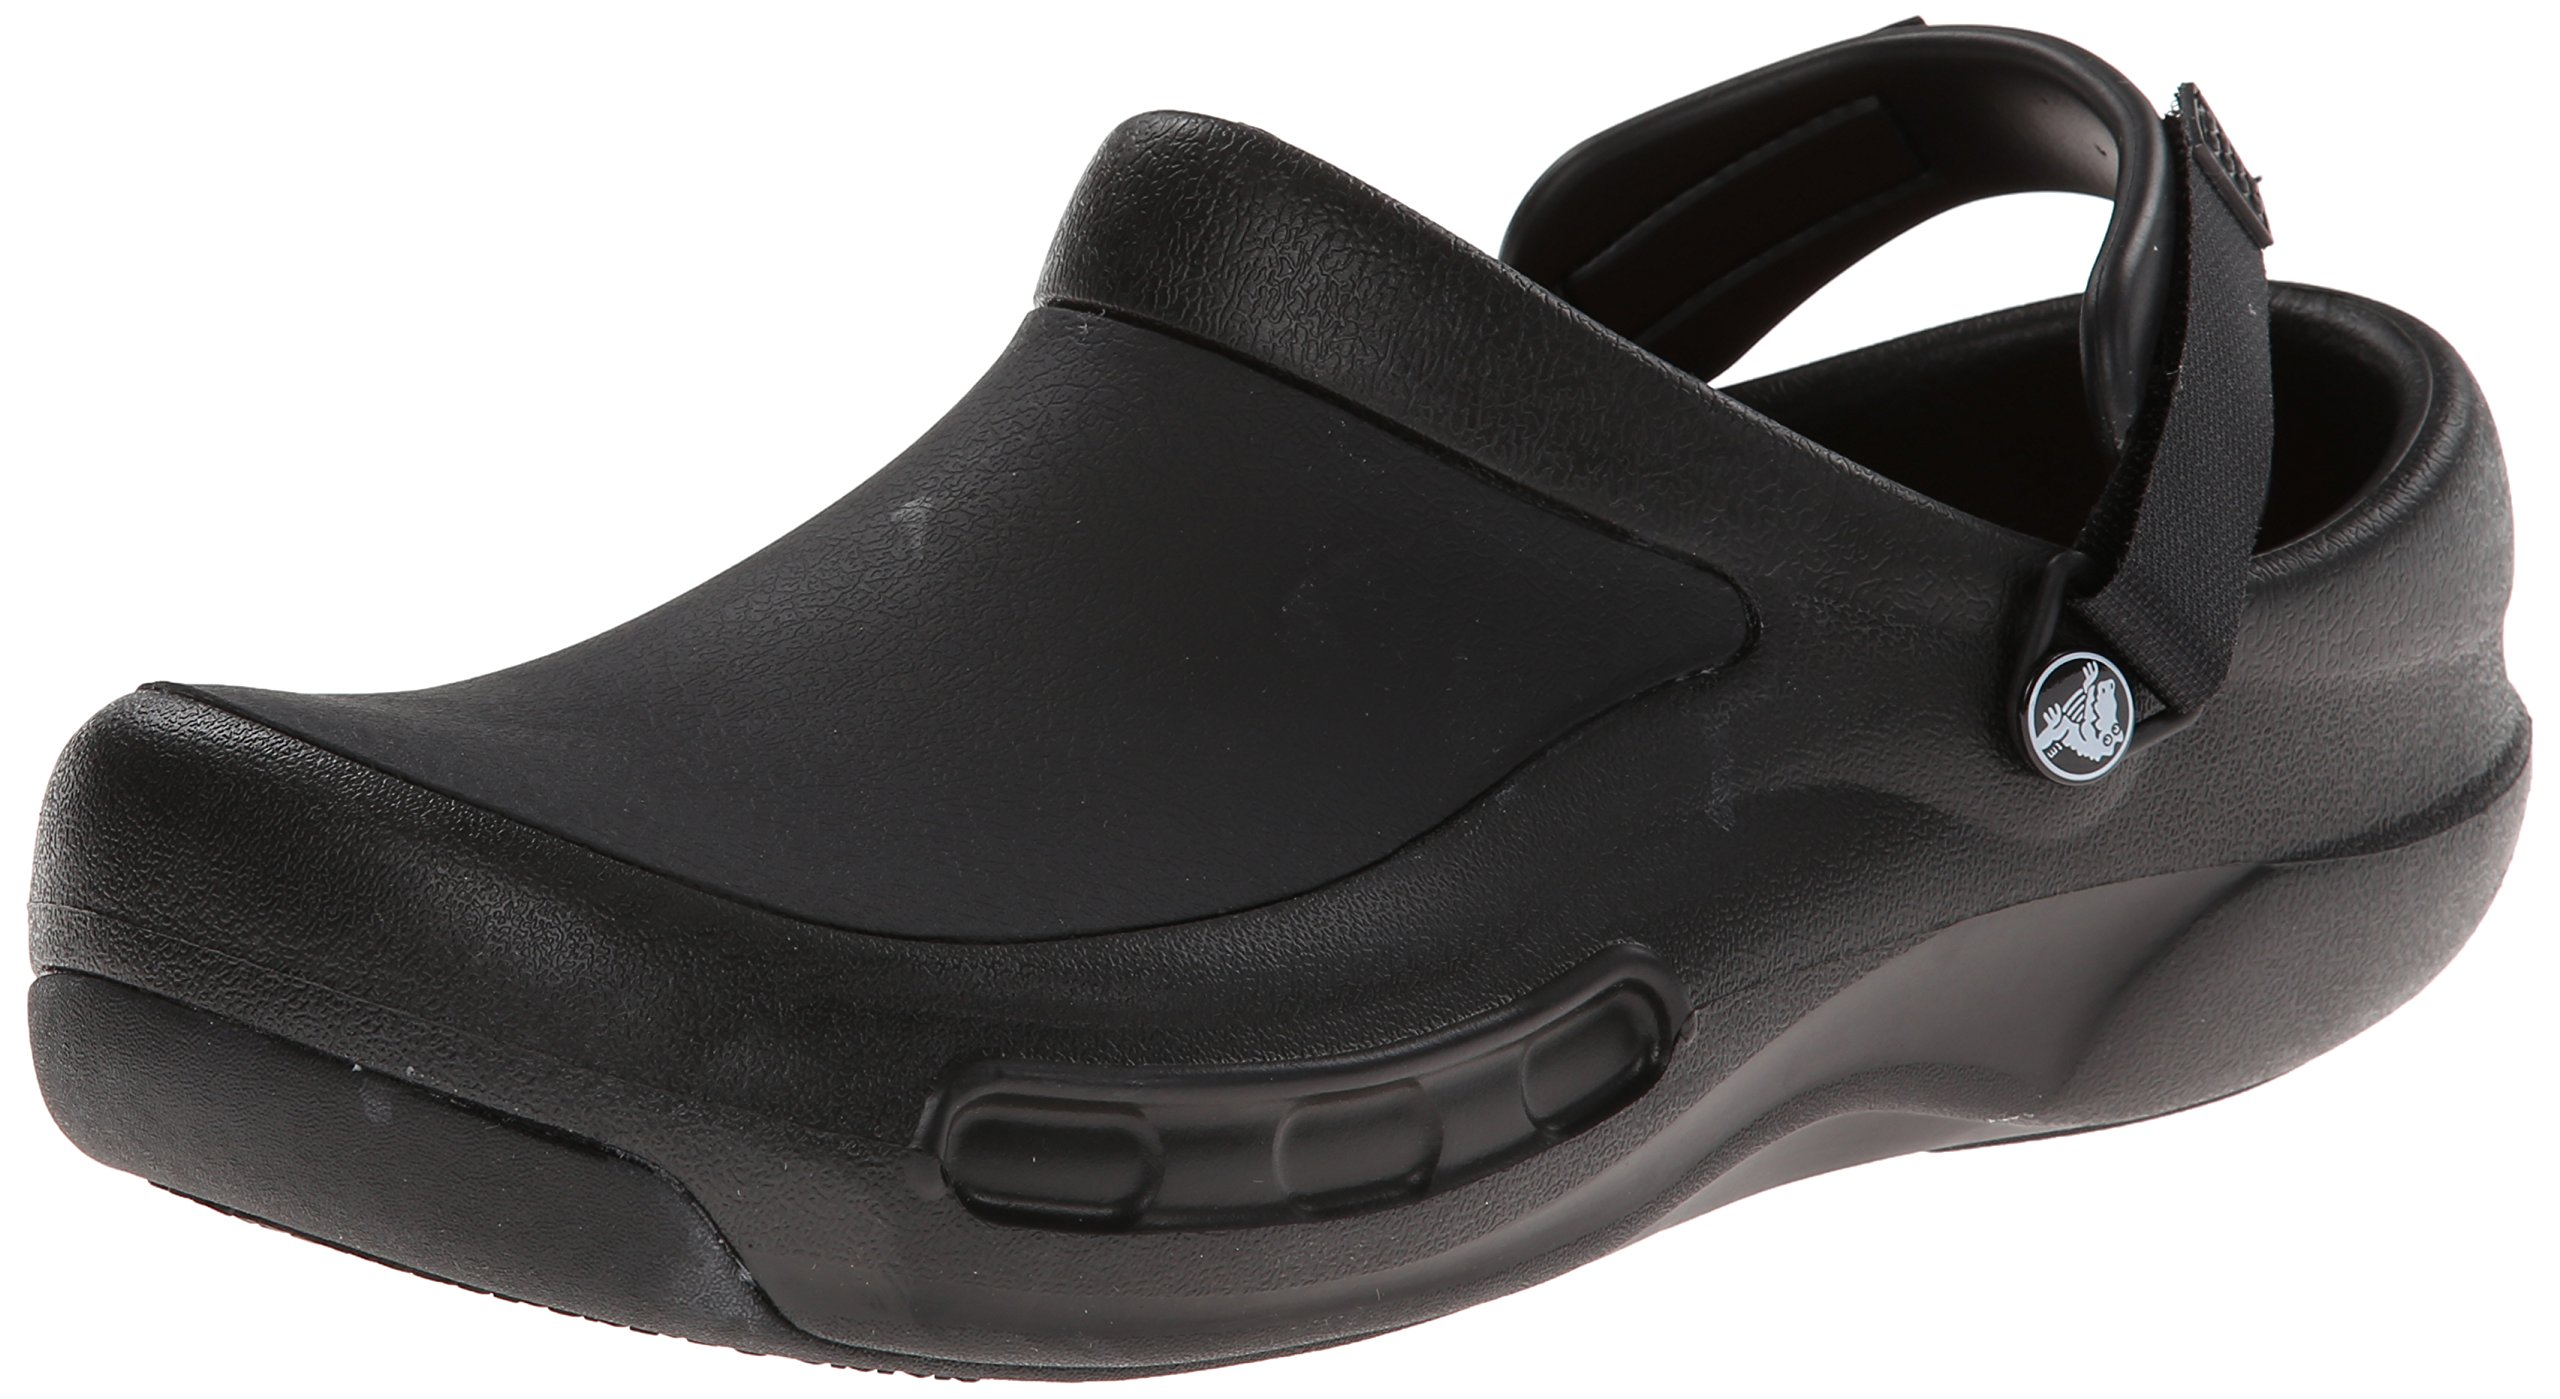 Crocs Men's 15010 Bistro Pro Clog,Black,10 M US by Crocs